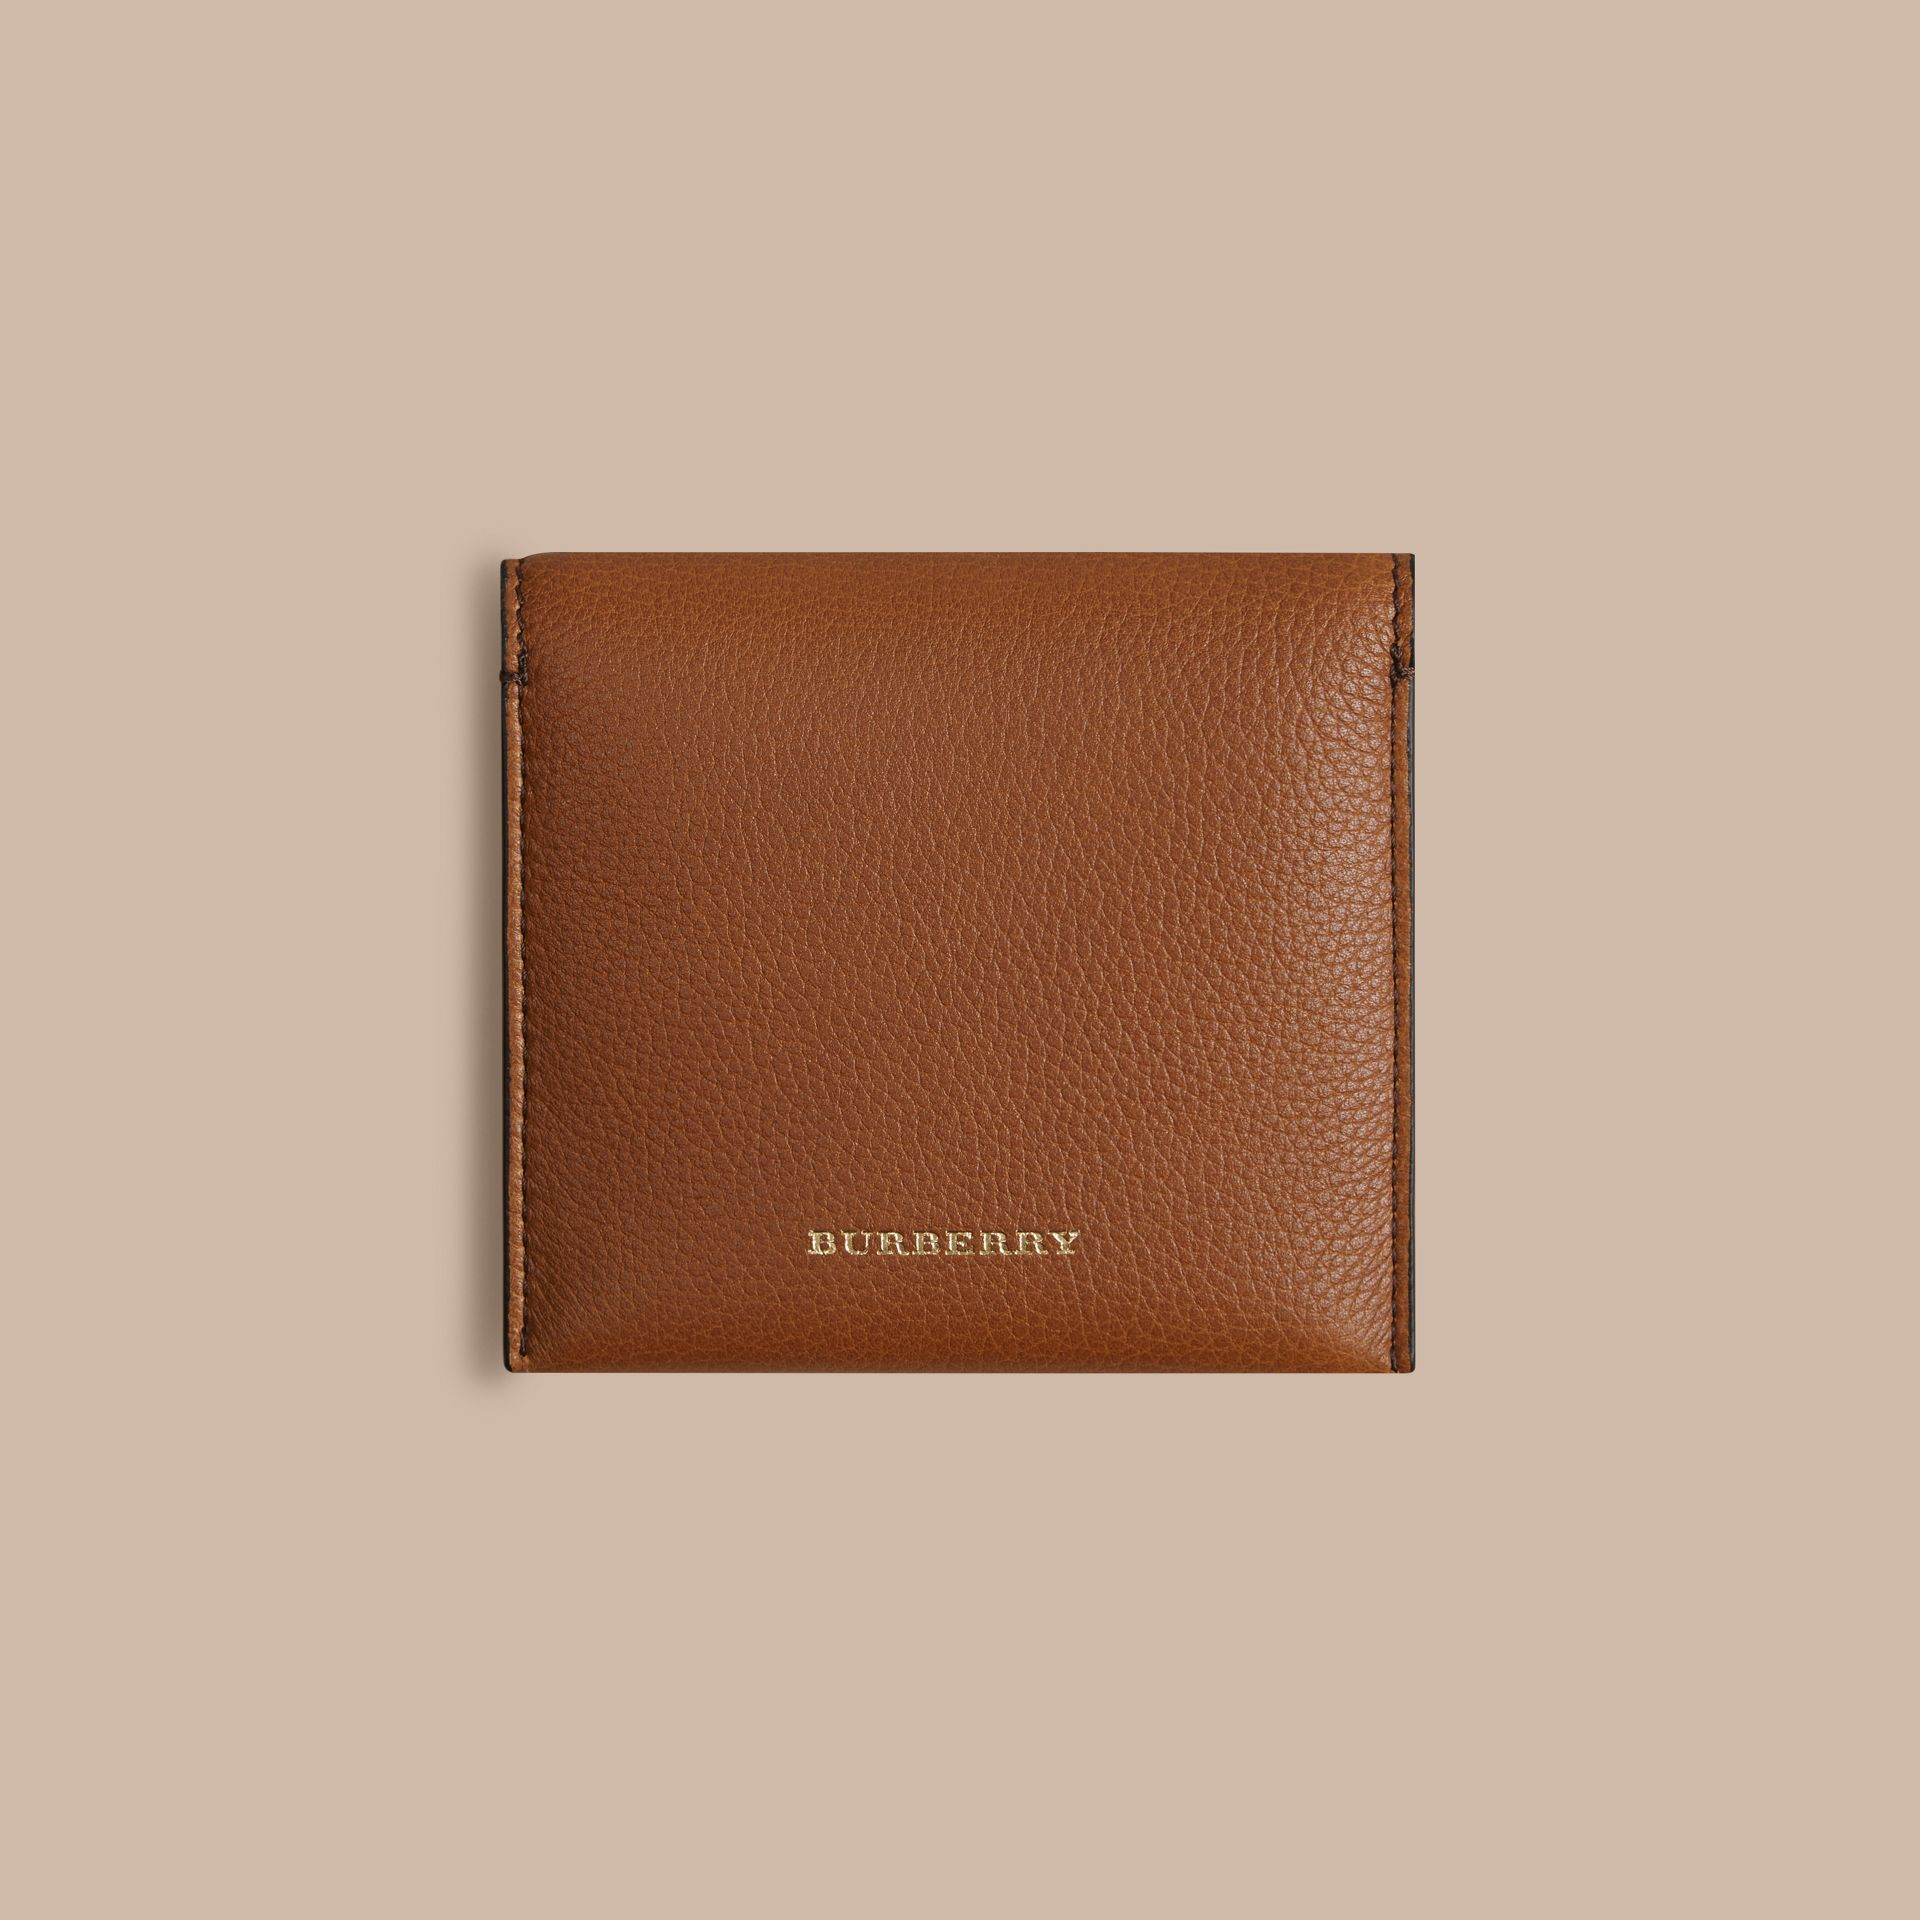 Grainy Leather Cufflink Case in Tan - Men | Burberry Canada - gallery image 3